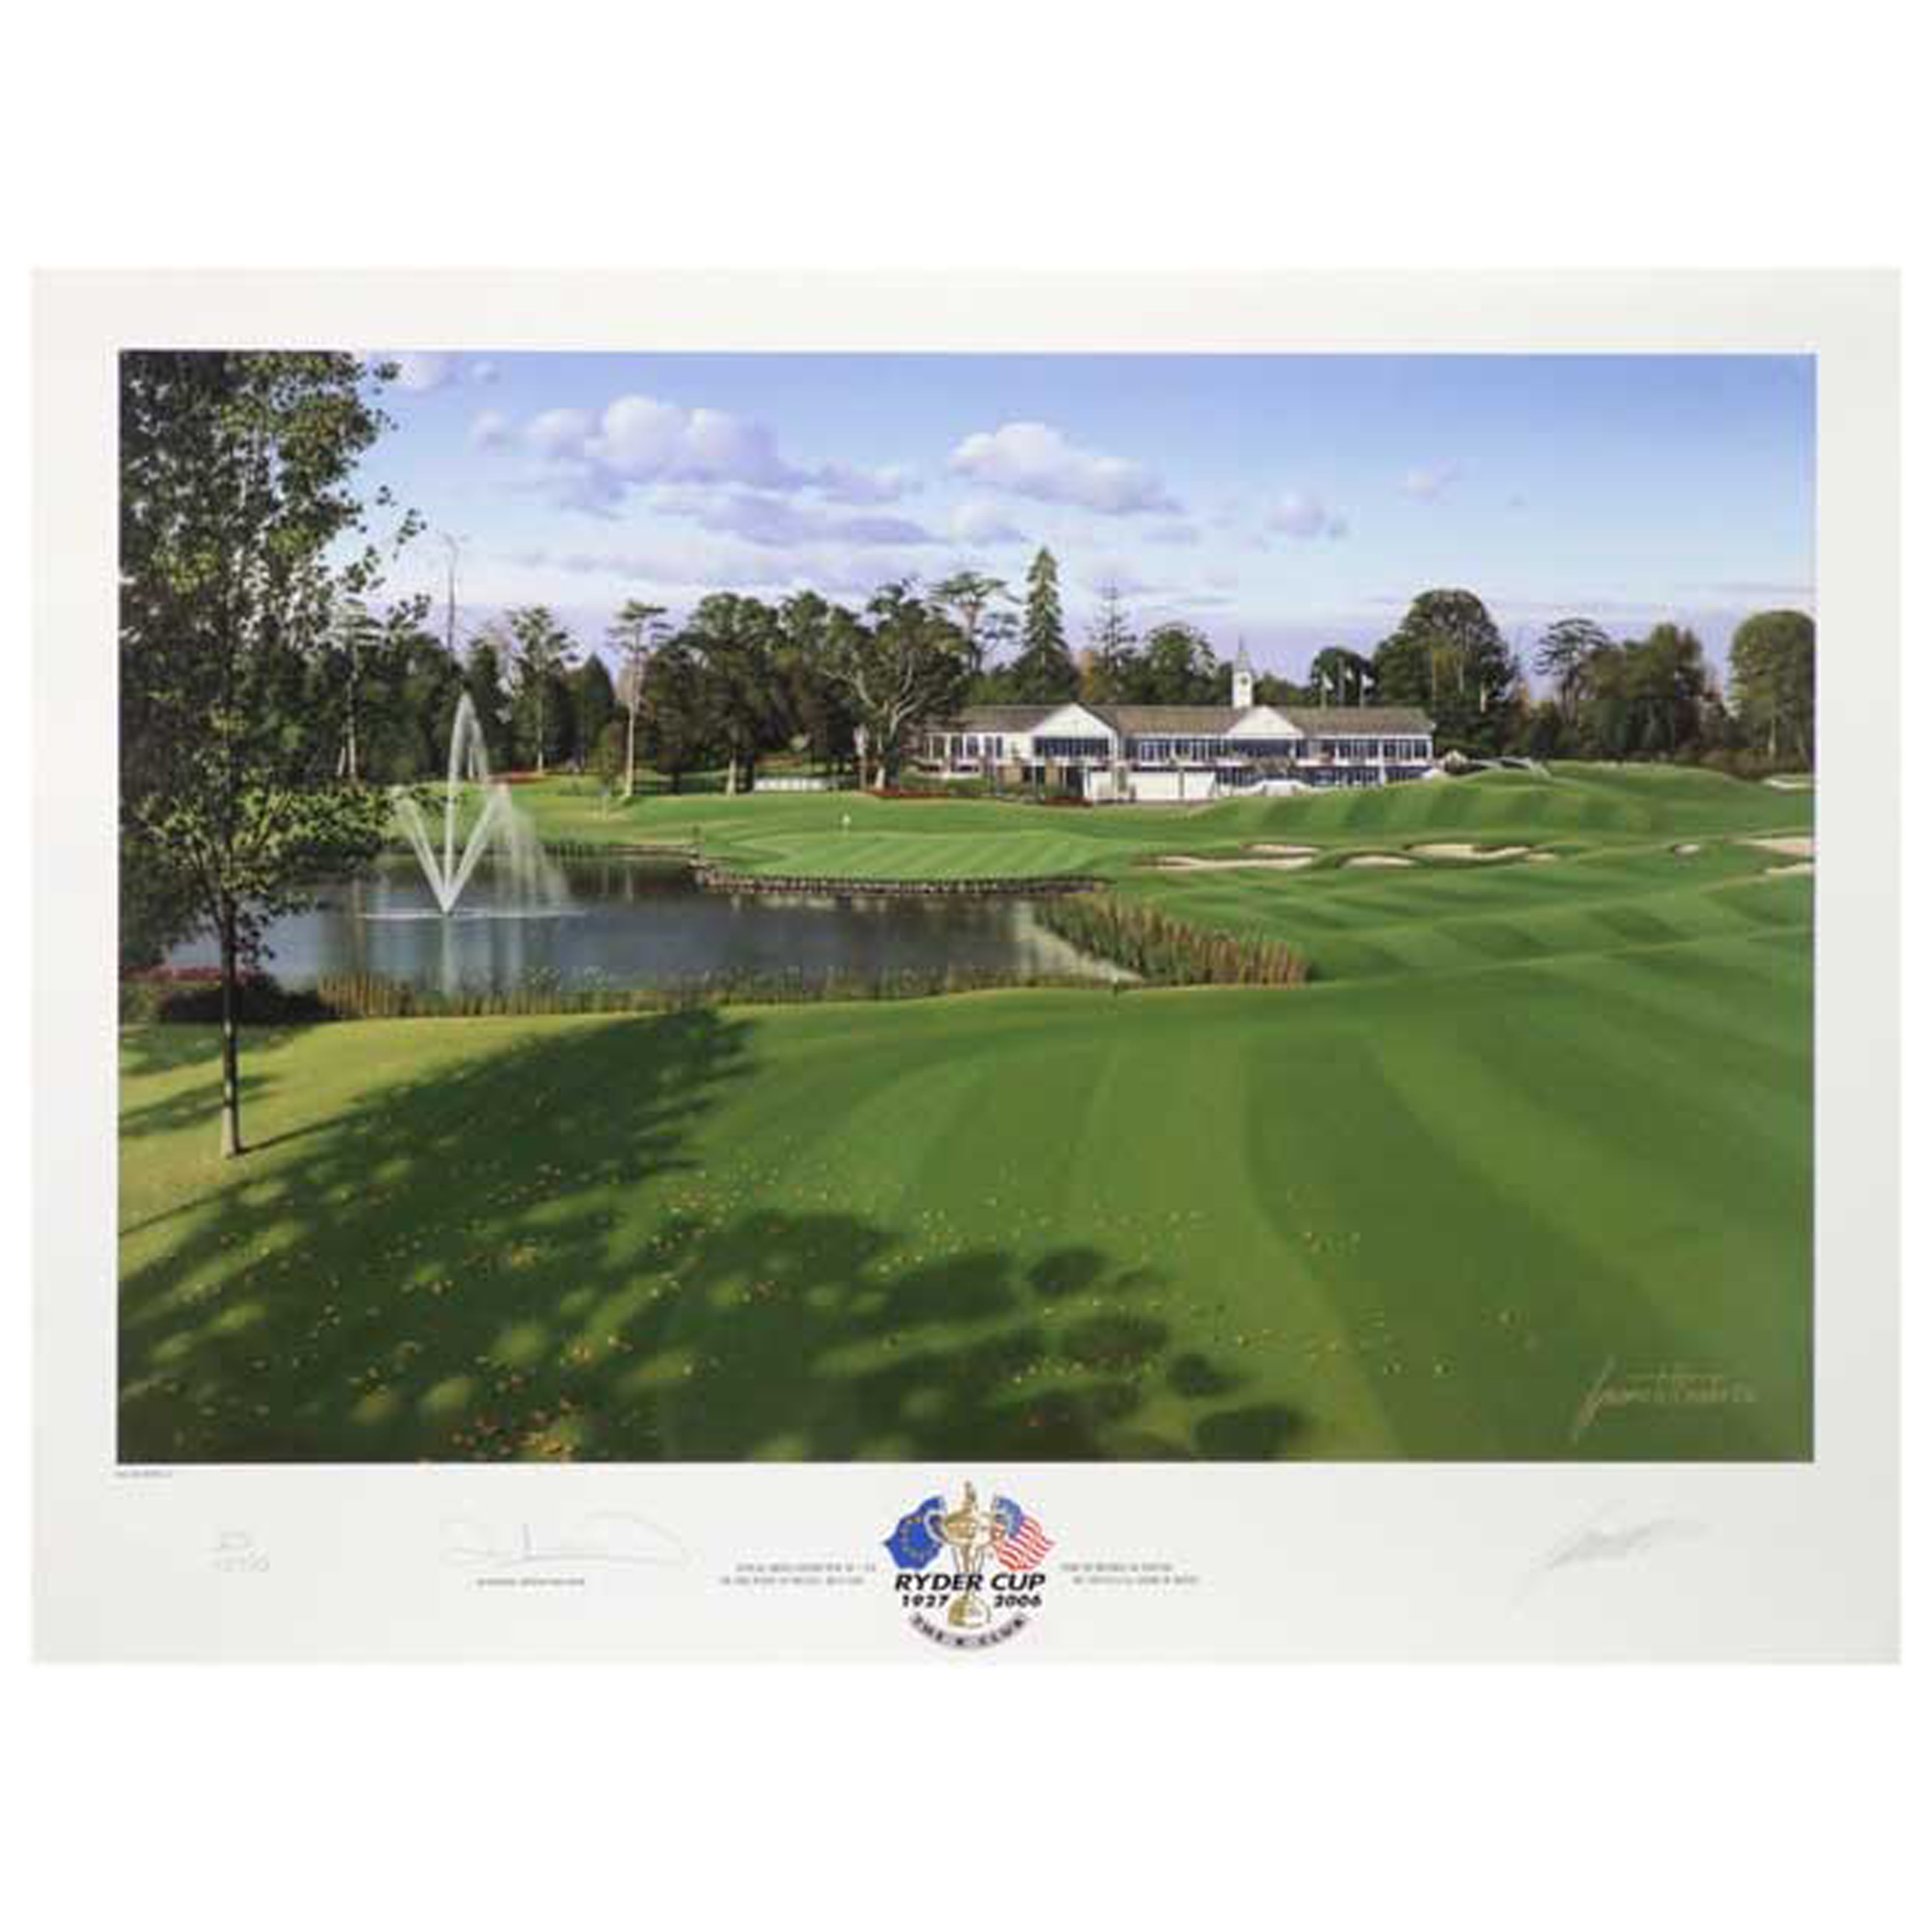 The 2014 Ryder Cup K Club 2006 18th Hole Limited Edition Print